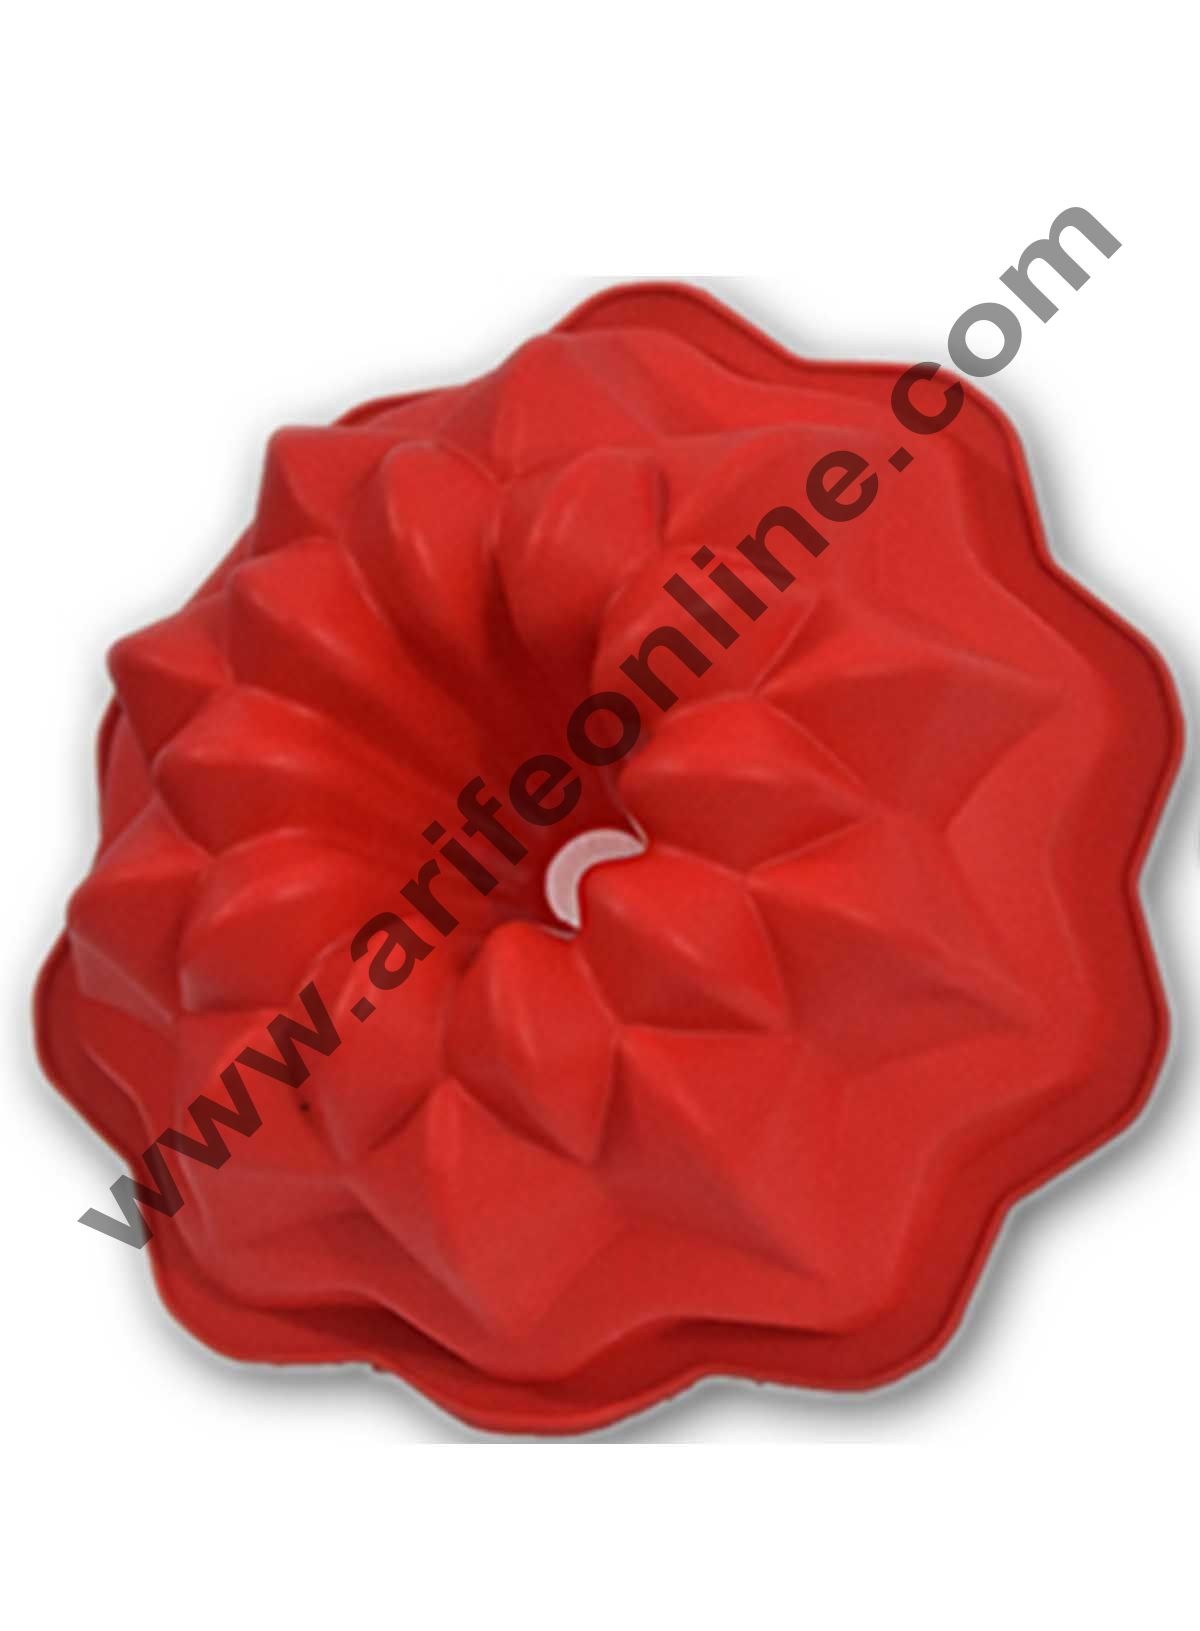 Cake Decor Silicon Bakeware Rose Shape Cake Mould